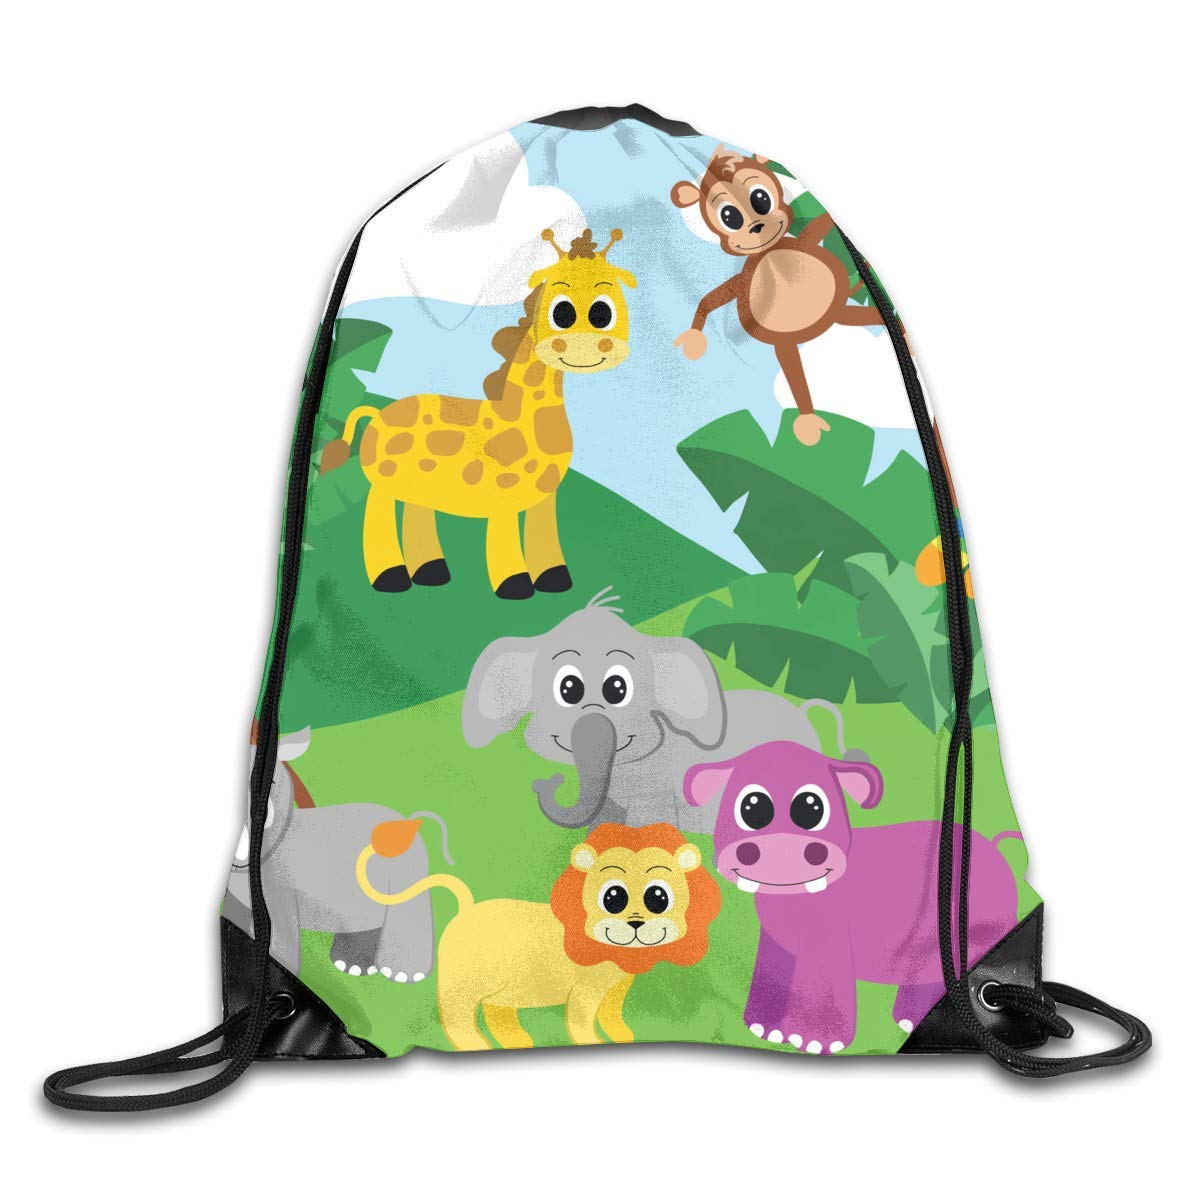 Backpack with tent clipart clipart freeuse stock Amazon.com | Andrea Back Drawstring Backpack Bag Jungle Clip Art ... clipart freeuse stock